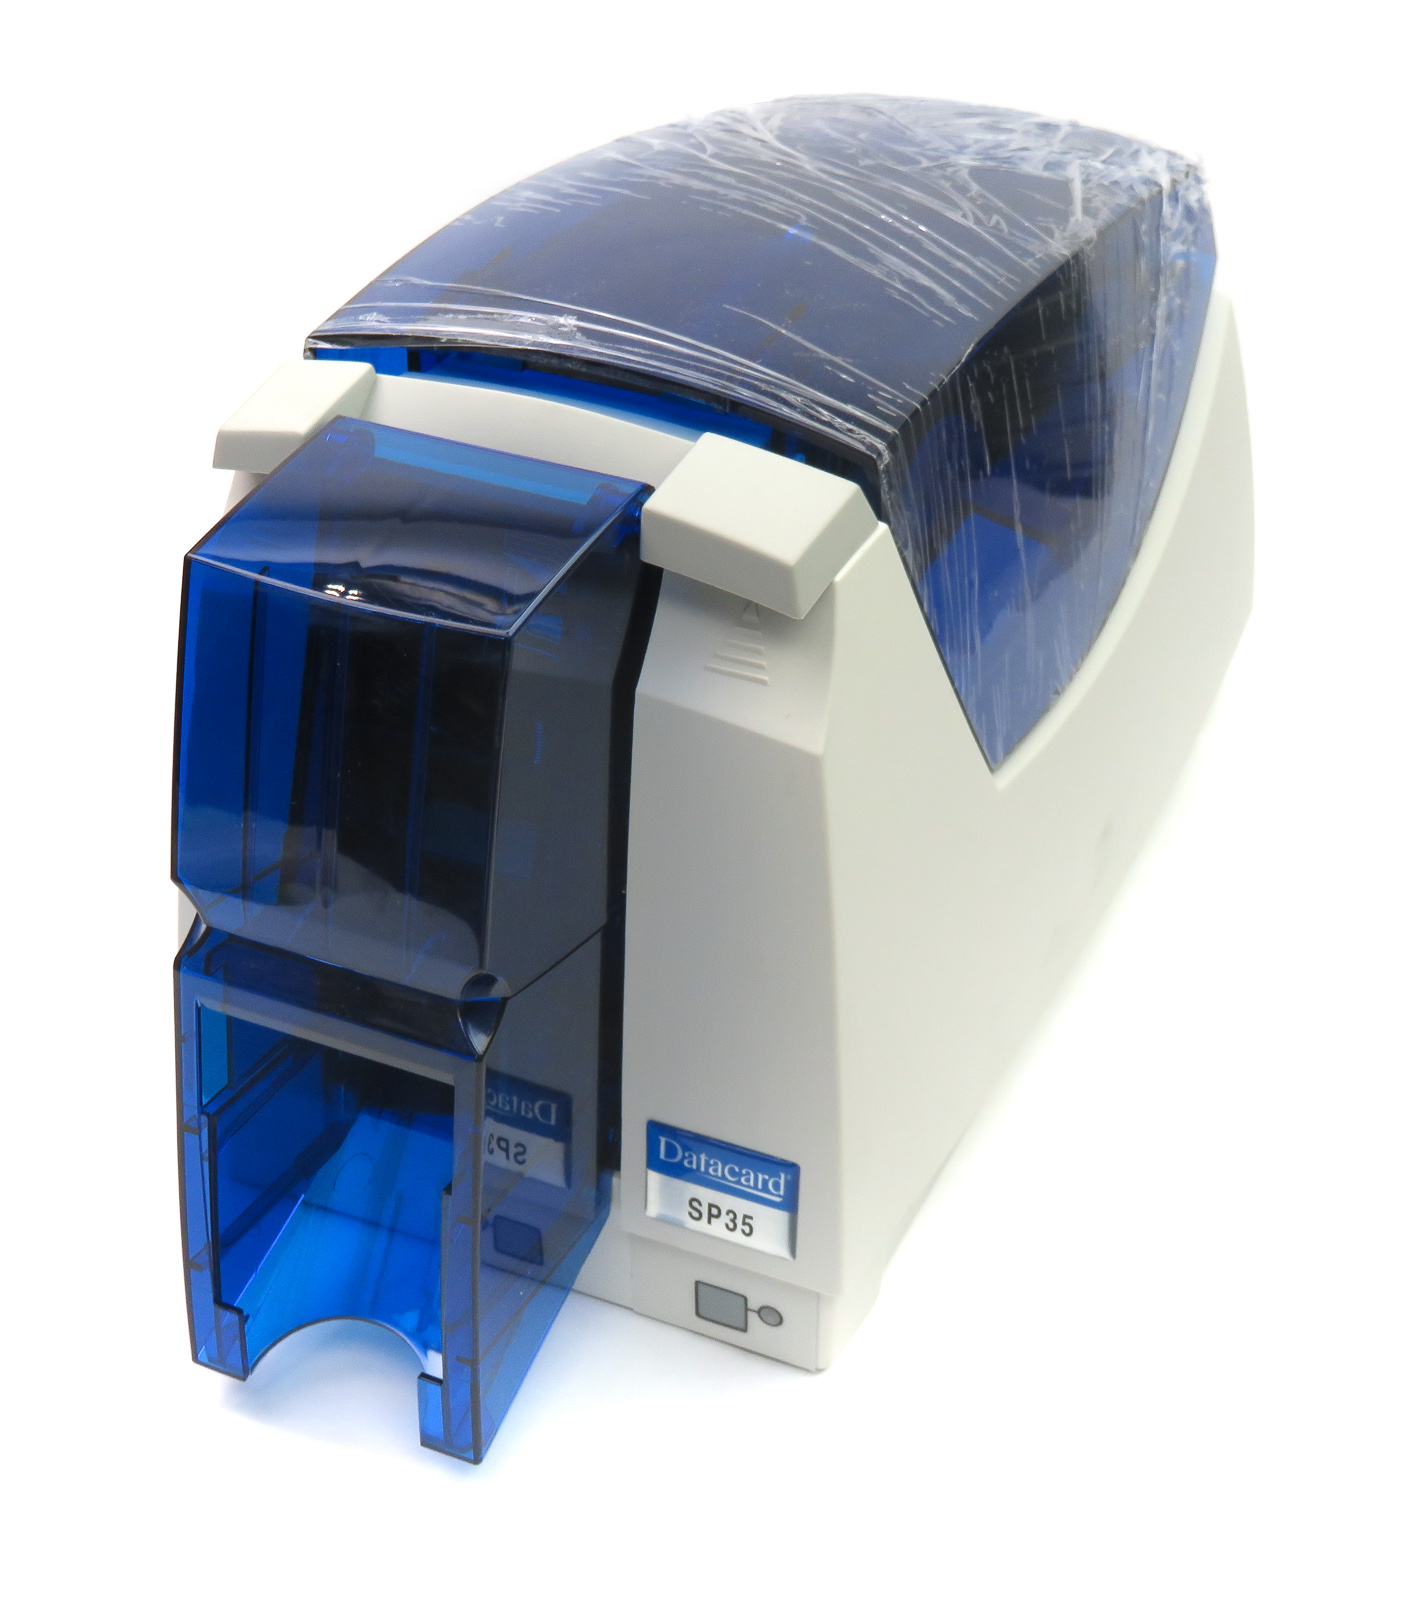 Datacard SP35 Single Sided Colour ID Card Printer Inc Carry Case & Accessories